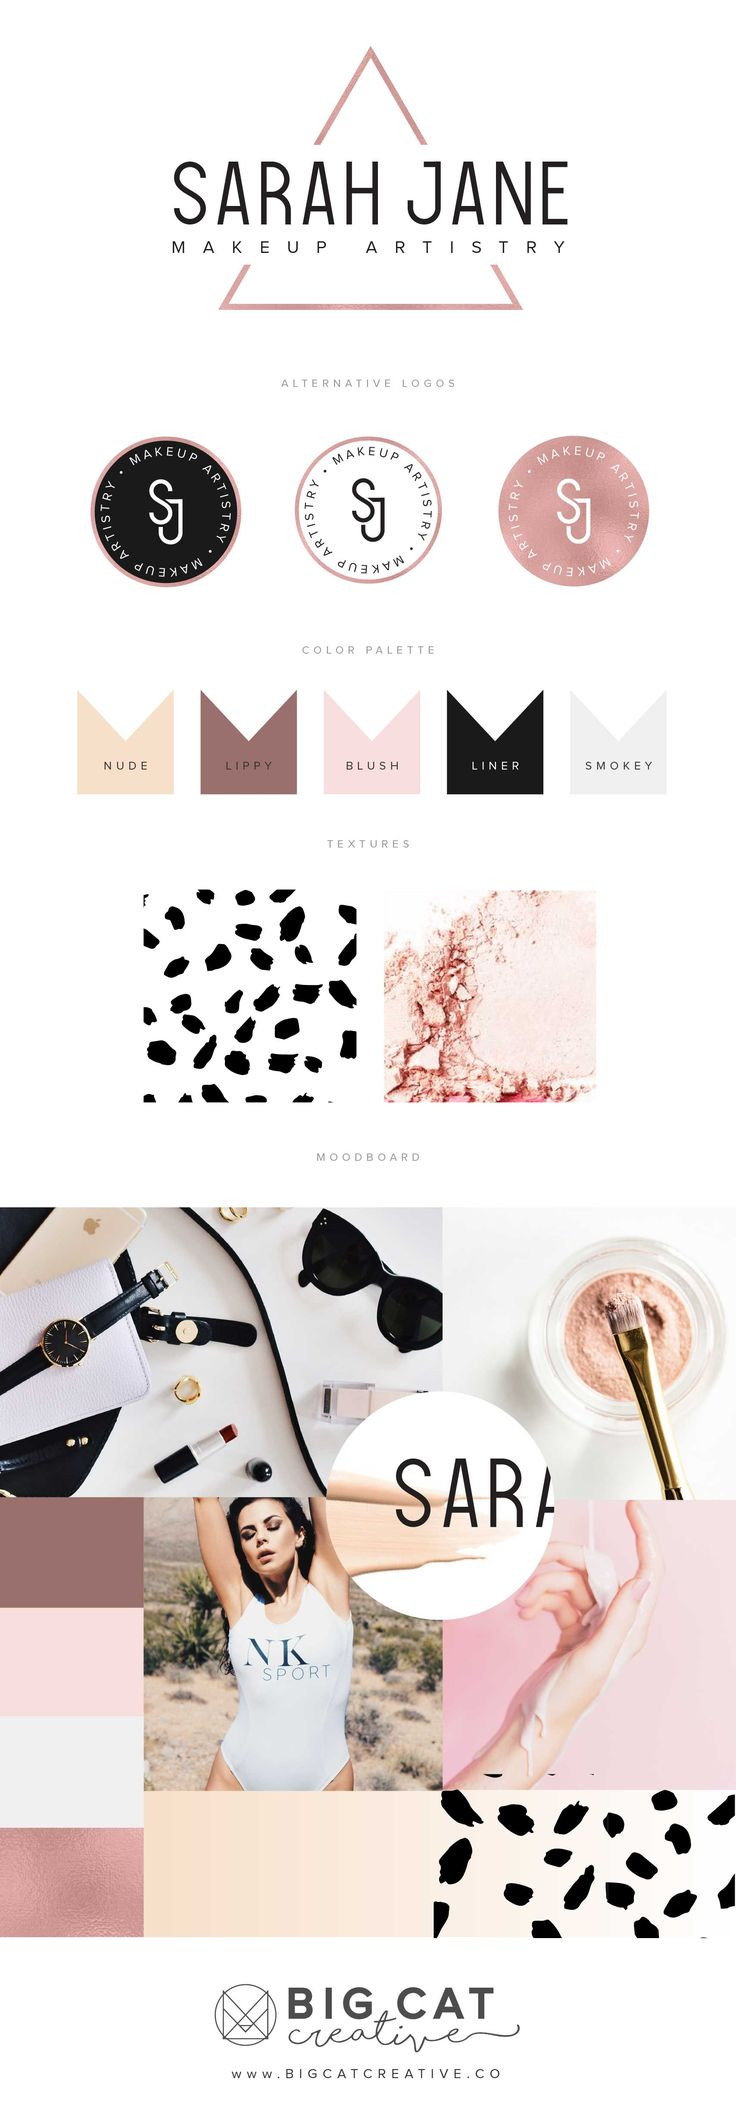 Color palete insto -I would like to introduce a light pink into the mix - love black, white, some sort of nude, copper, and fair pink.